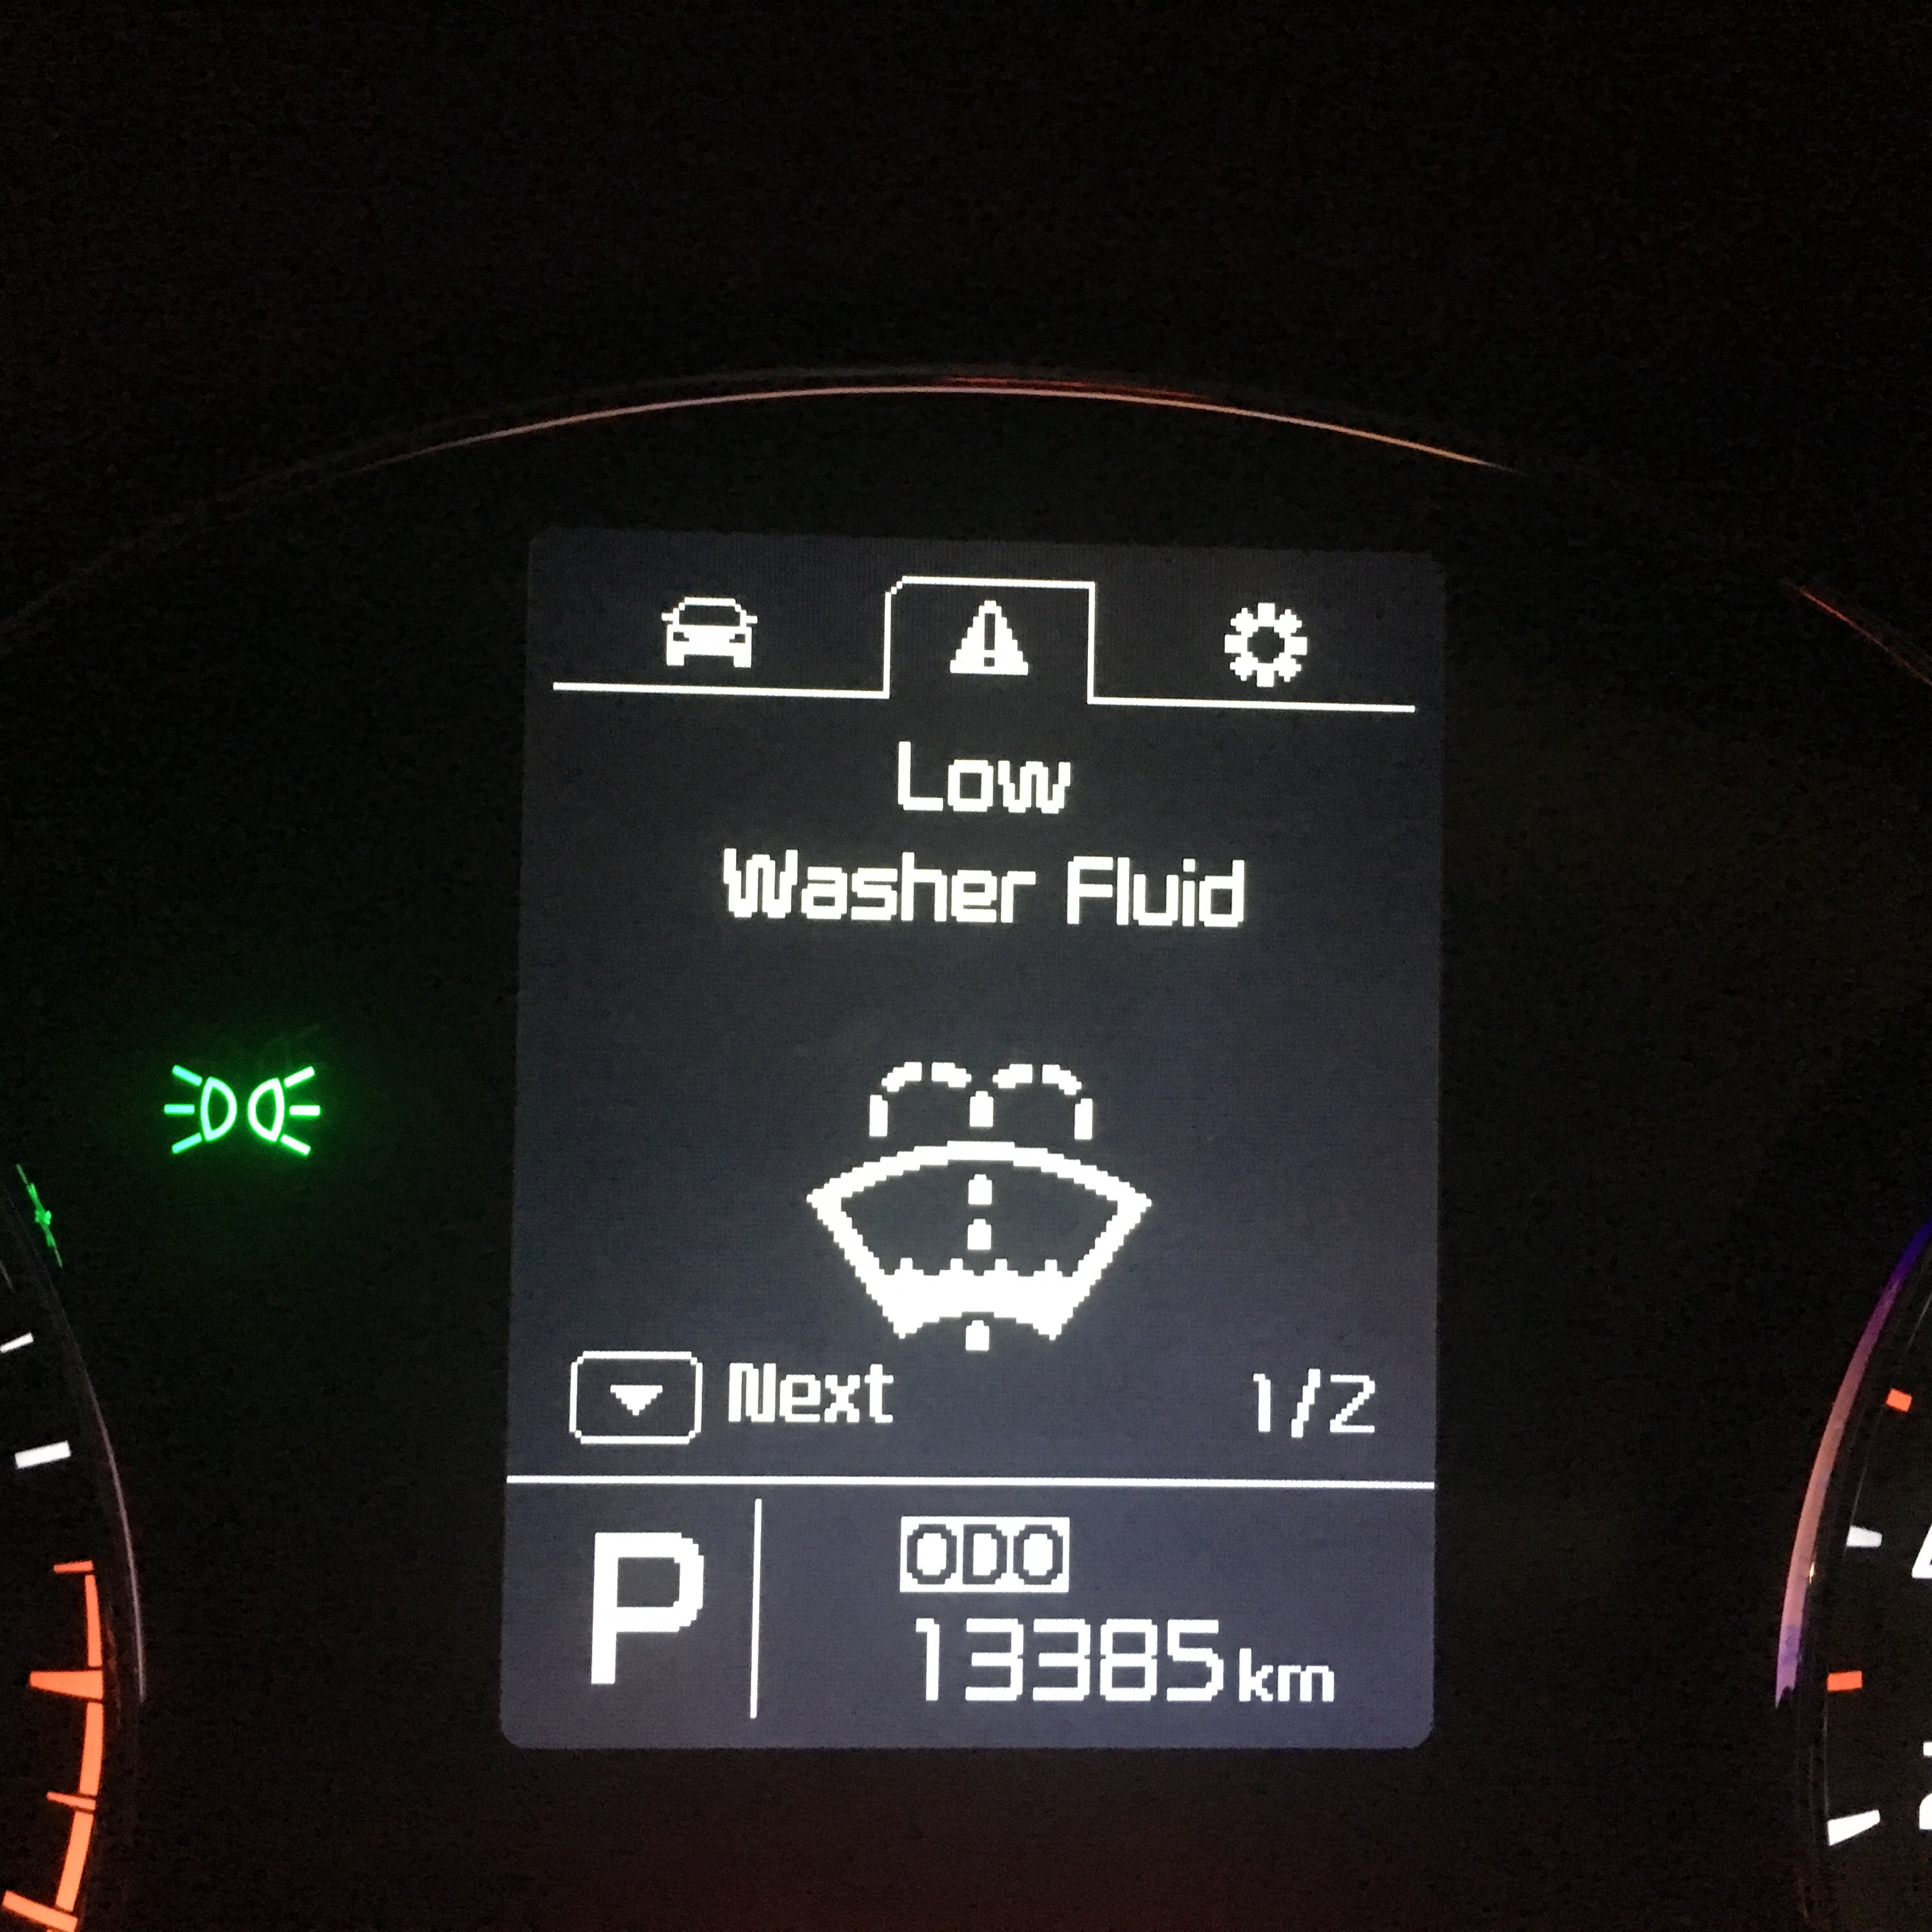 Kia's Low Washer Fluid alert